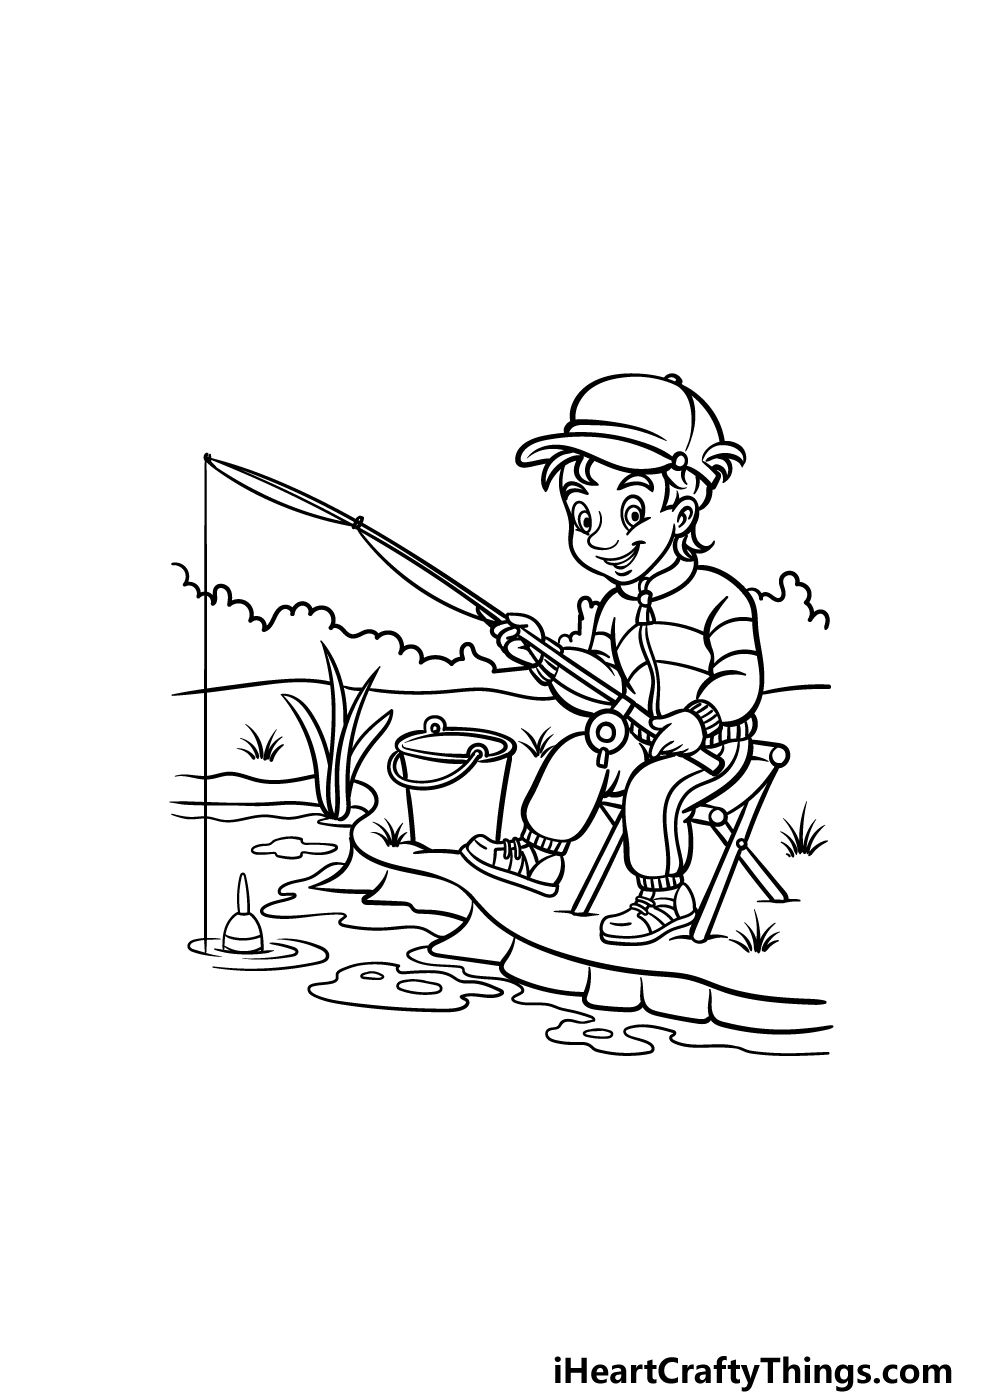 how to draw fishing step 5